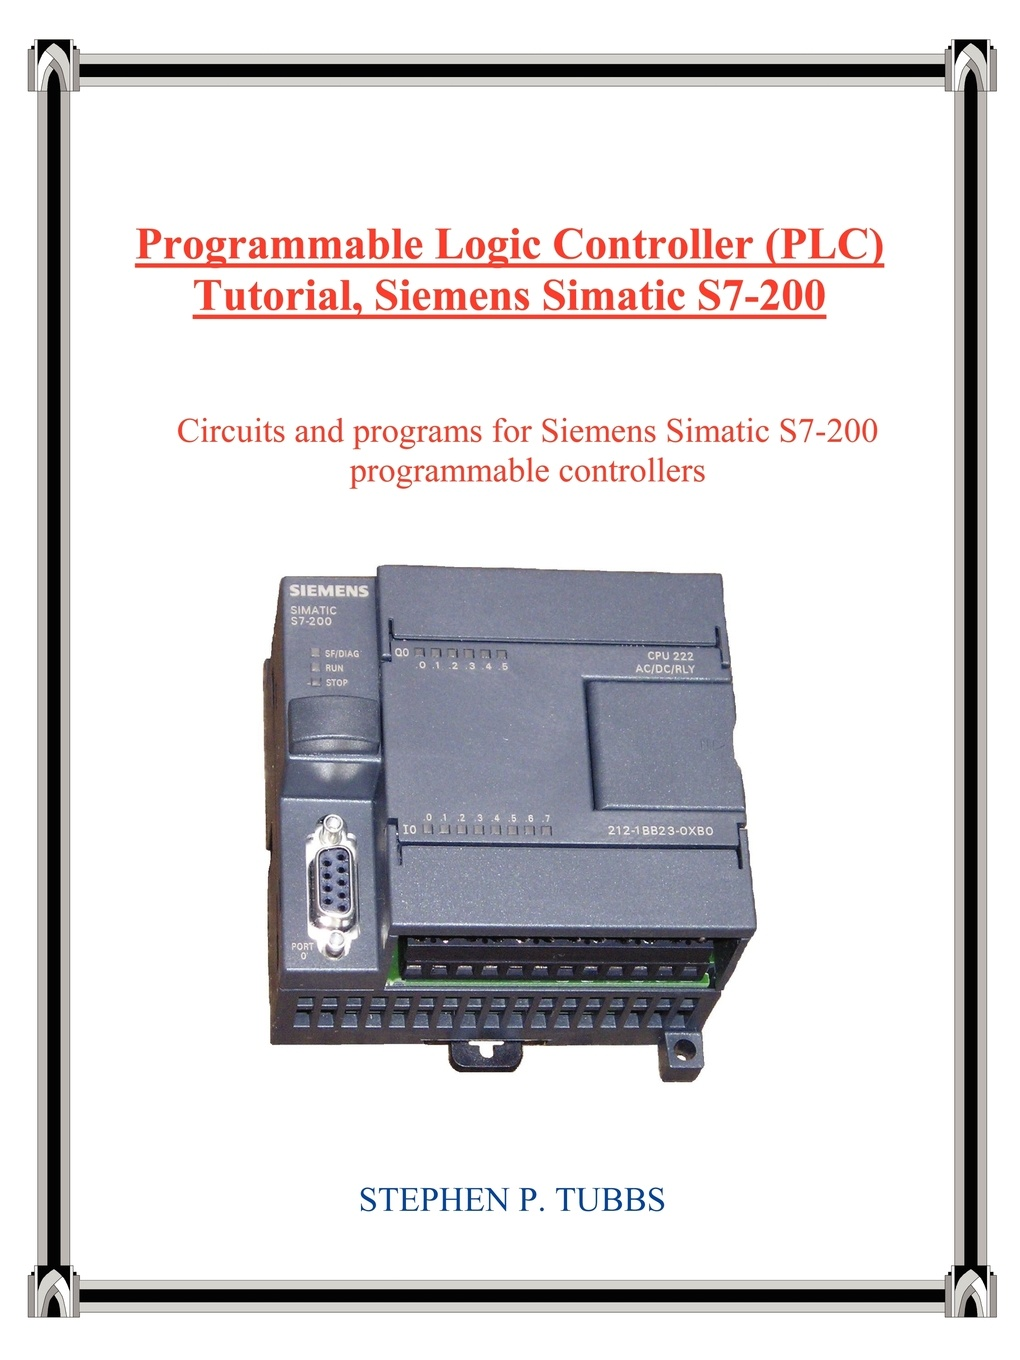 Stephen P. Tubbs Programmable Logic Controller (Plc) Tutorial, Siemens Simatic S7-200 6es7221 1bf22 0xa0 6es7 221 1bf22 0xa0 compatible simatic s7 200 plc module fast shipping